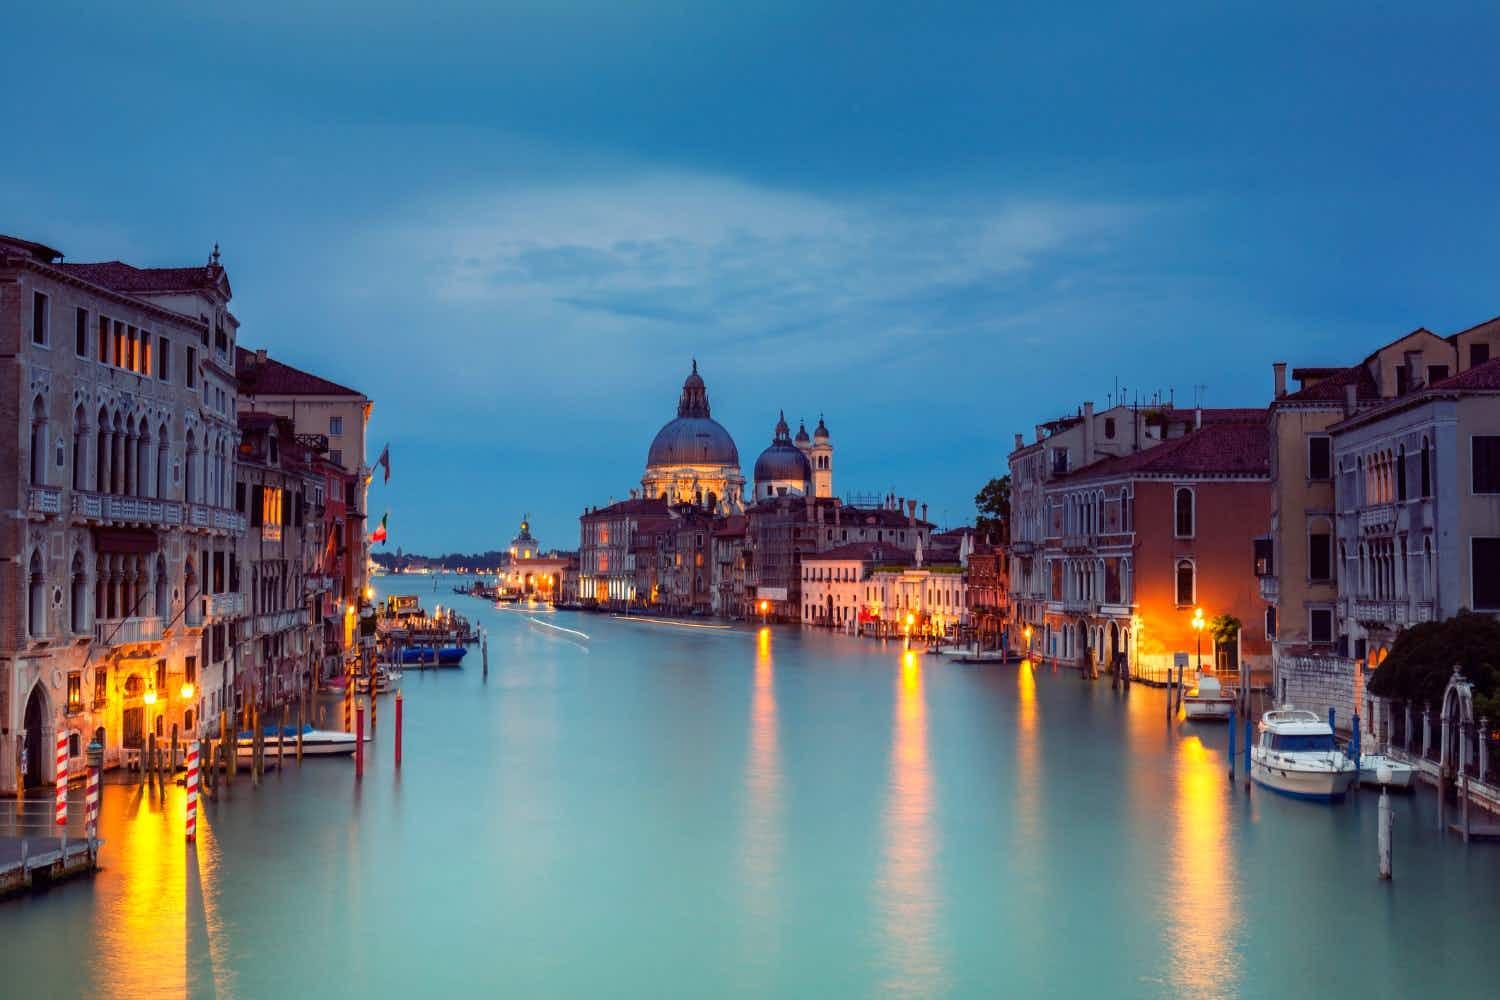 Day-trippers to Venice are set to be charged an entry fee